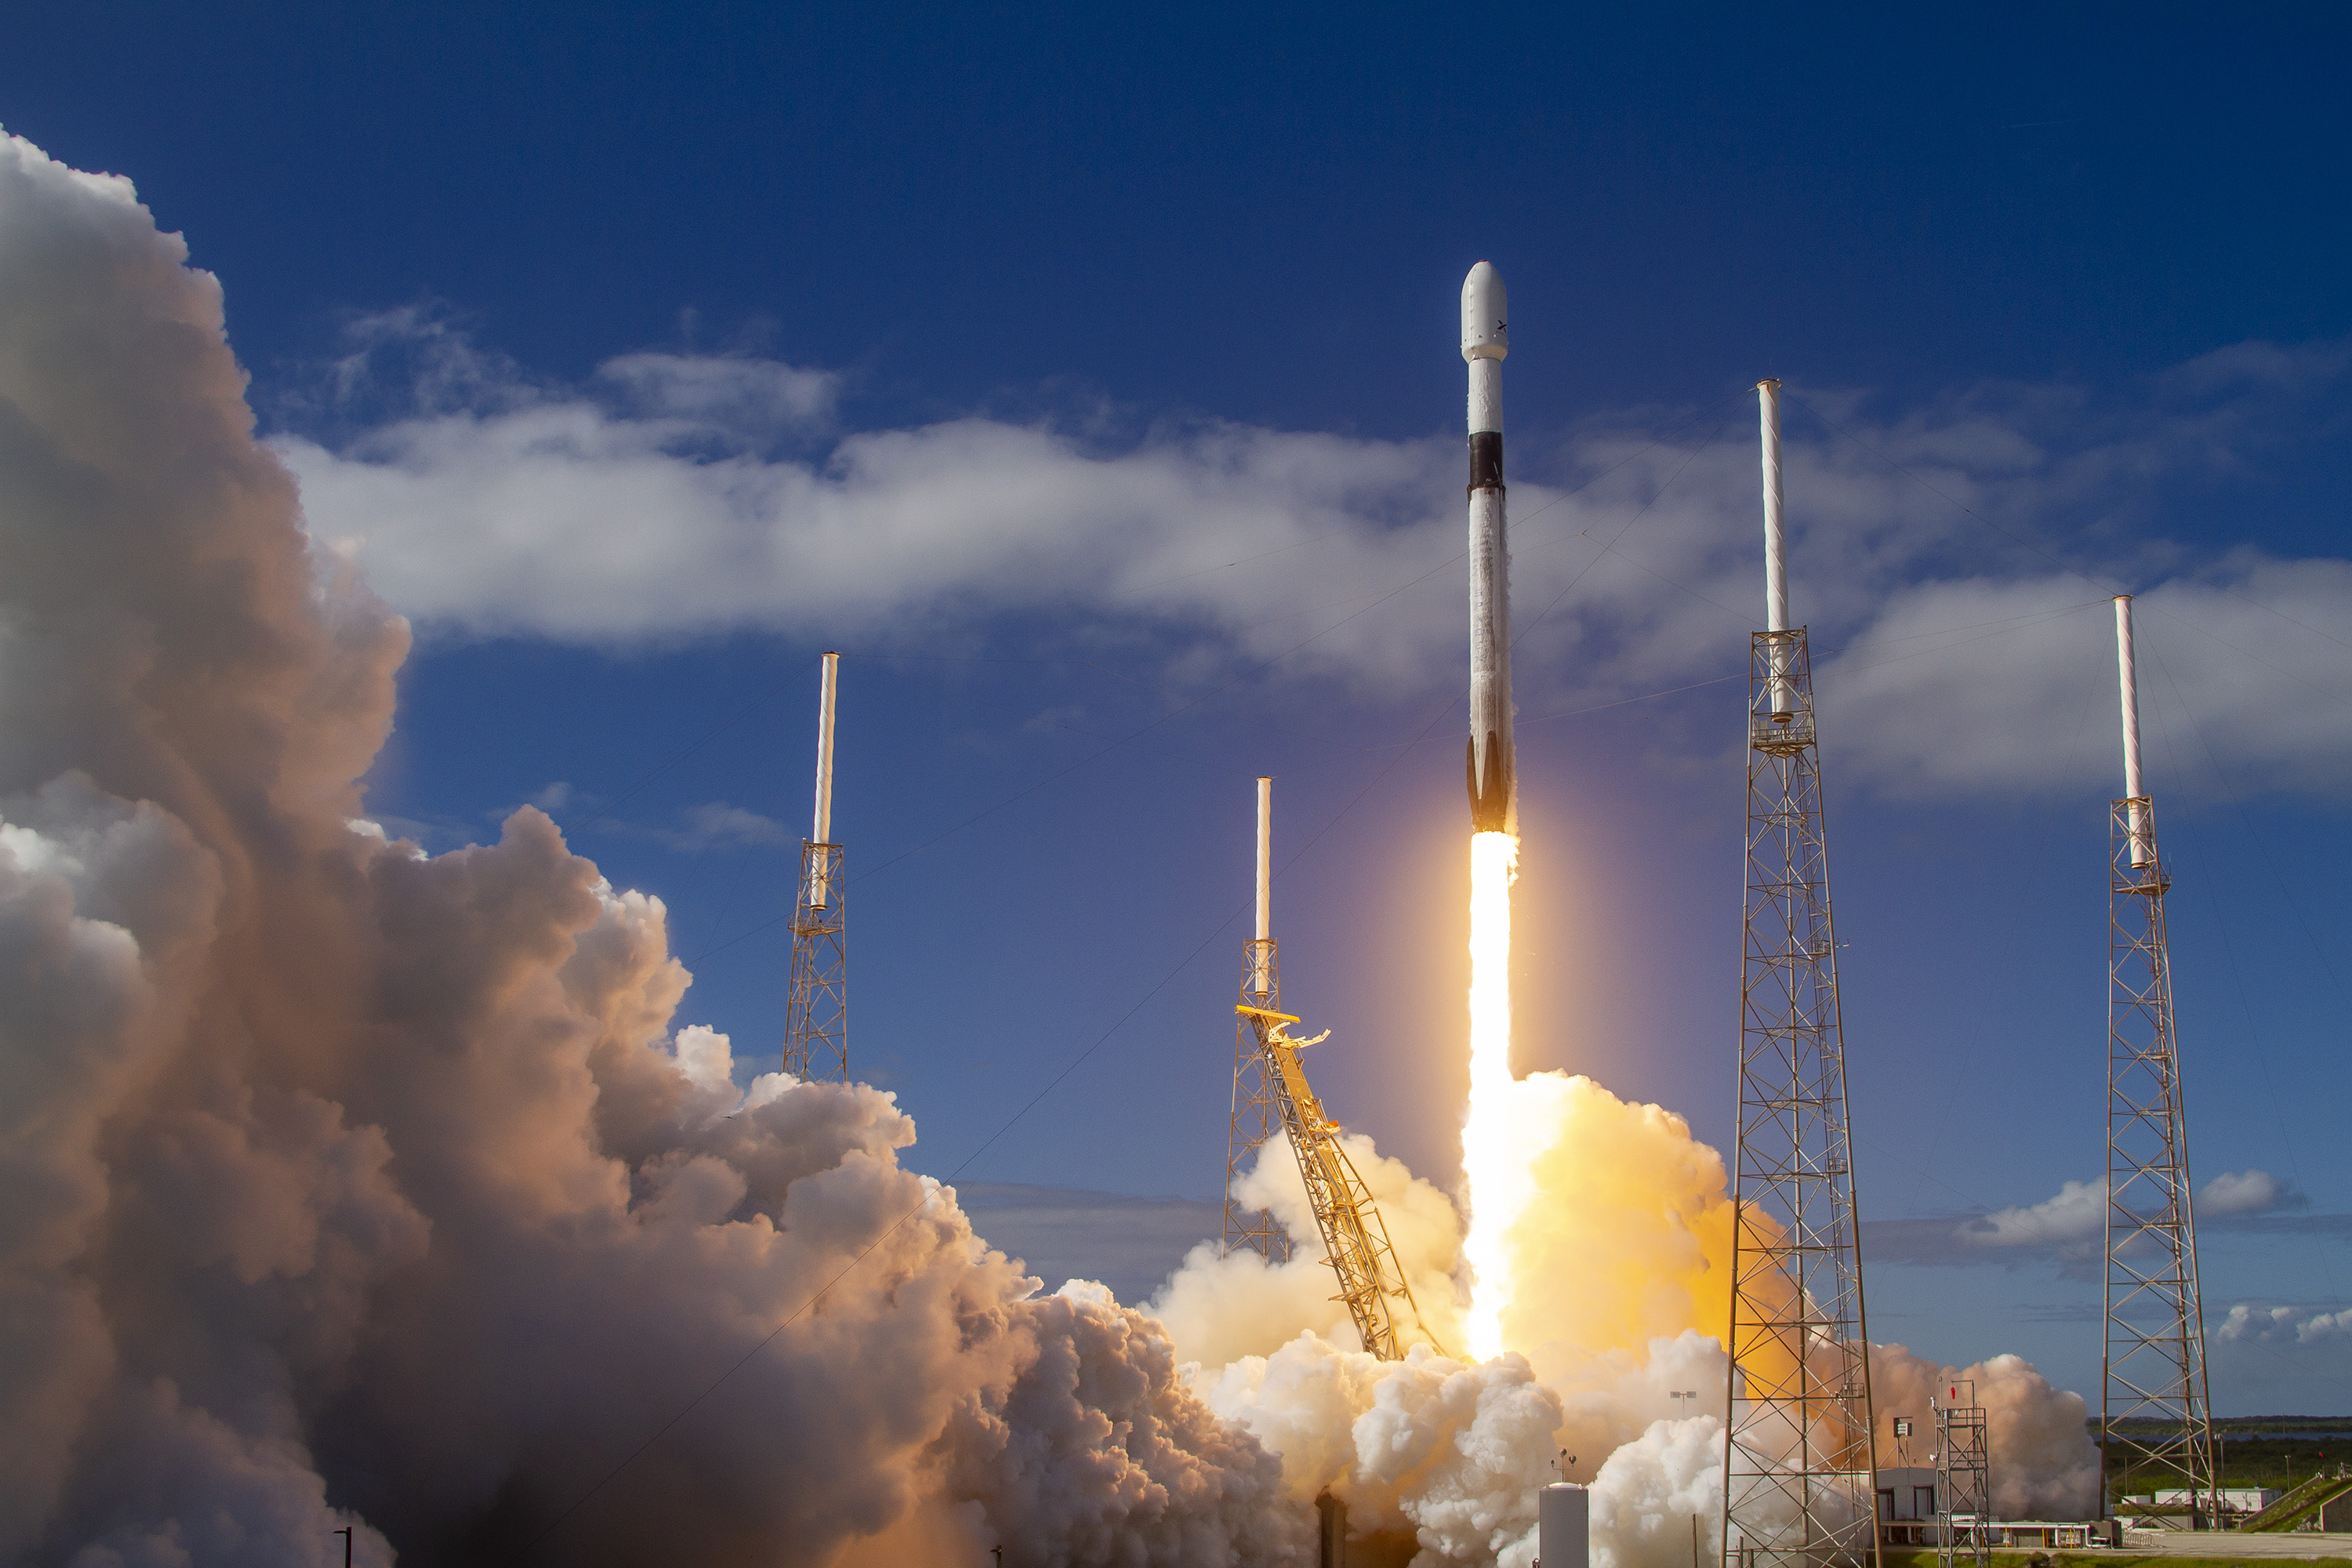 SpaceX launched 60 Starlink satellites from Space Launch Complex 40 at Cape Canaveral Space Force Station, Florida, in November 2019. (SpaceX)